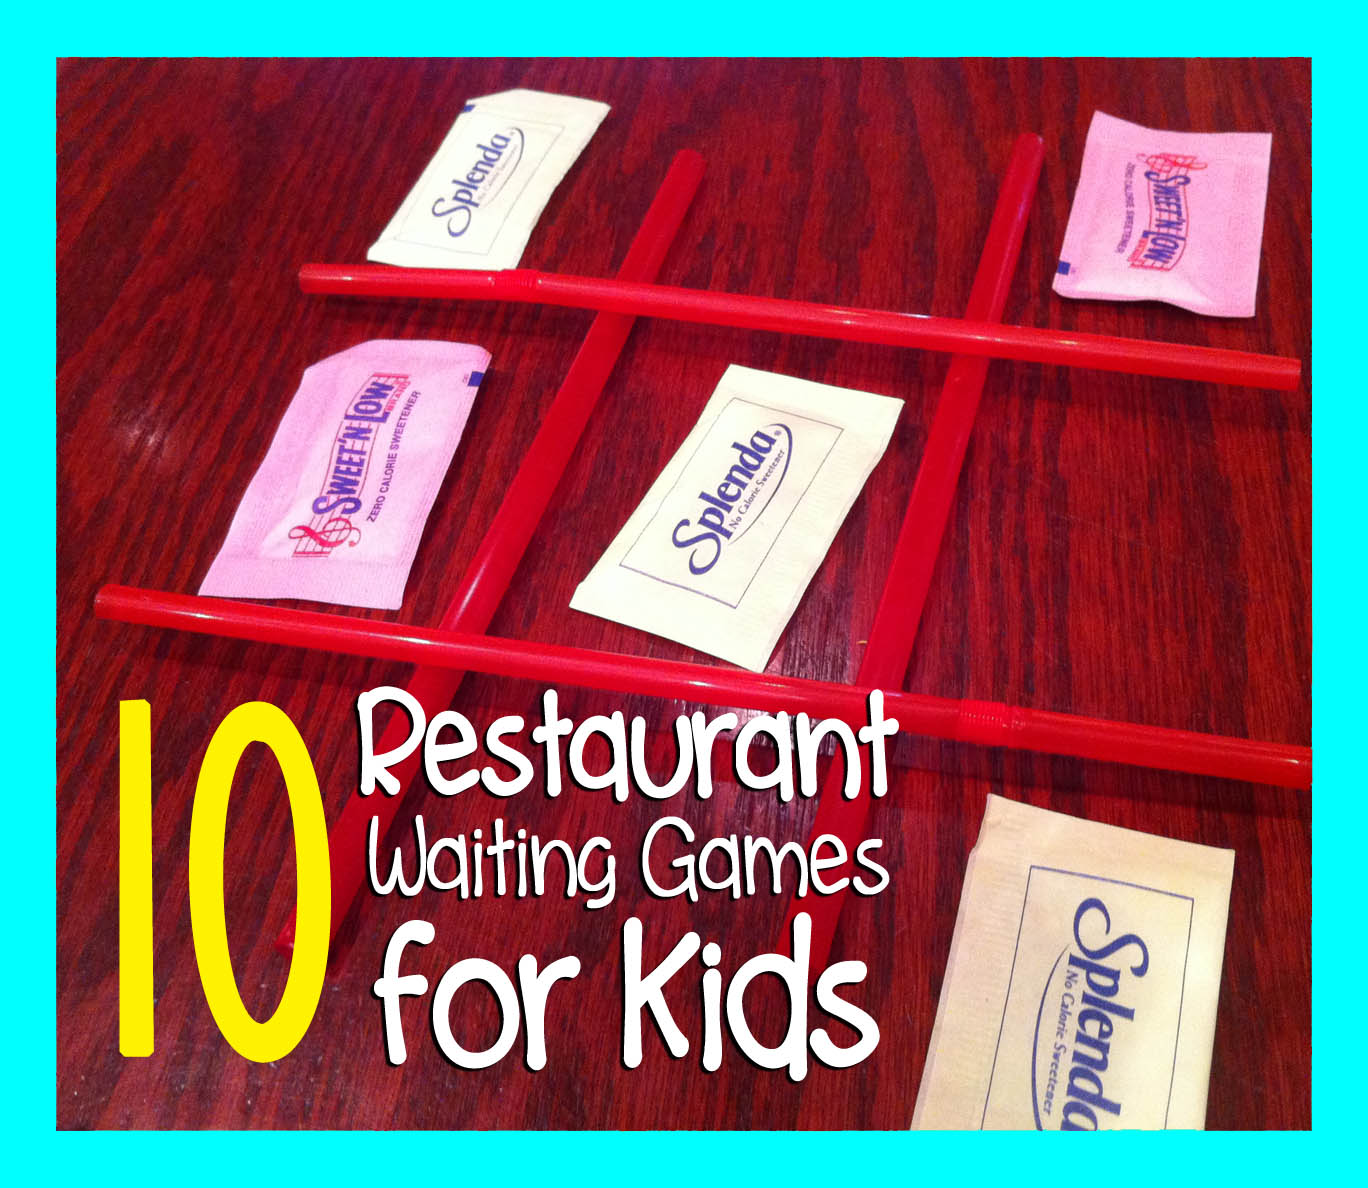 Restaurant Games Play While Waiting Food